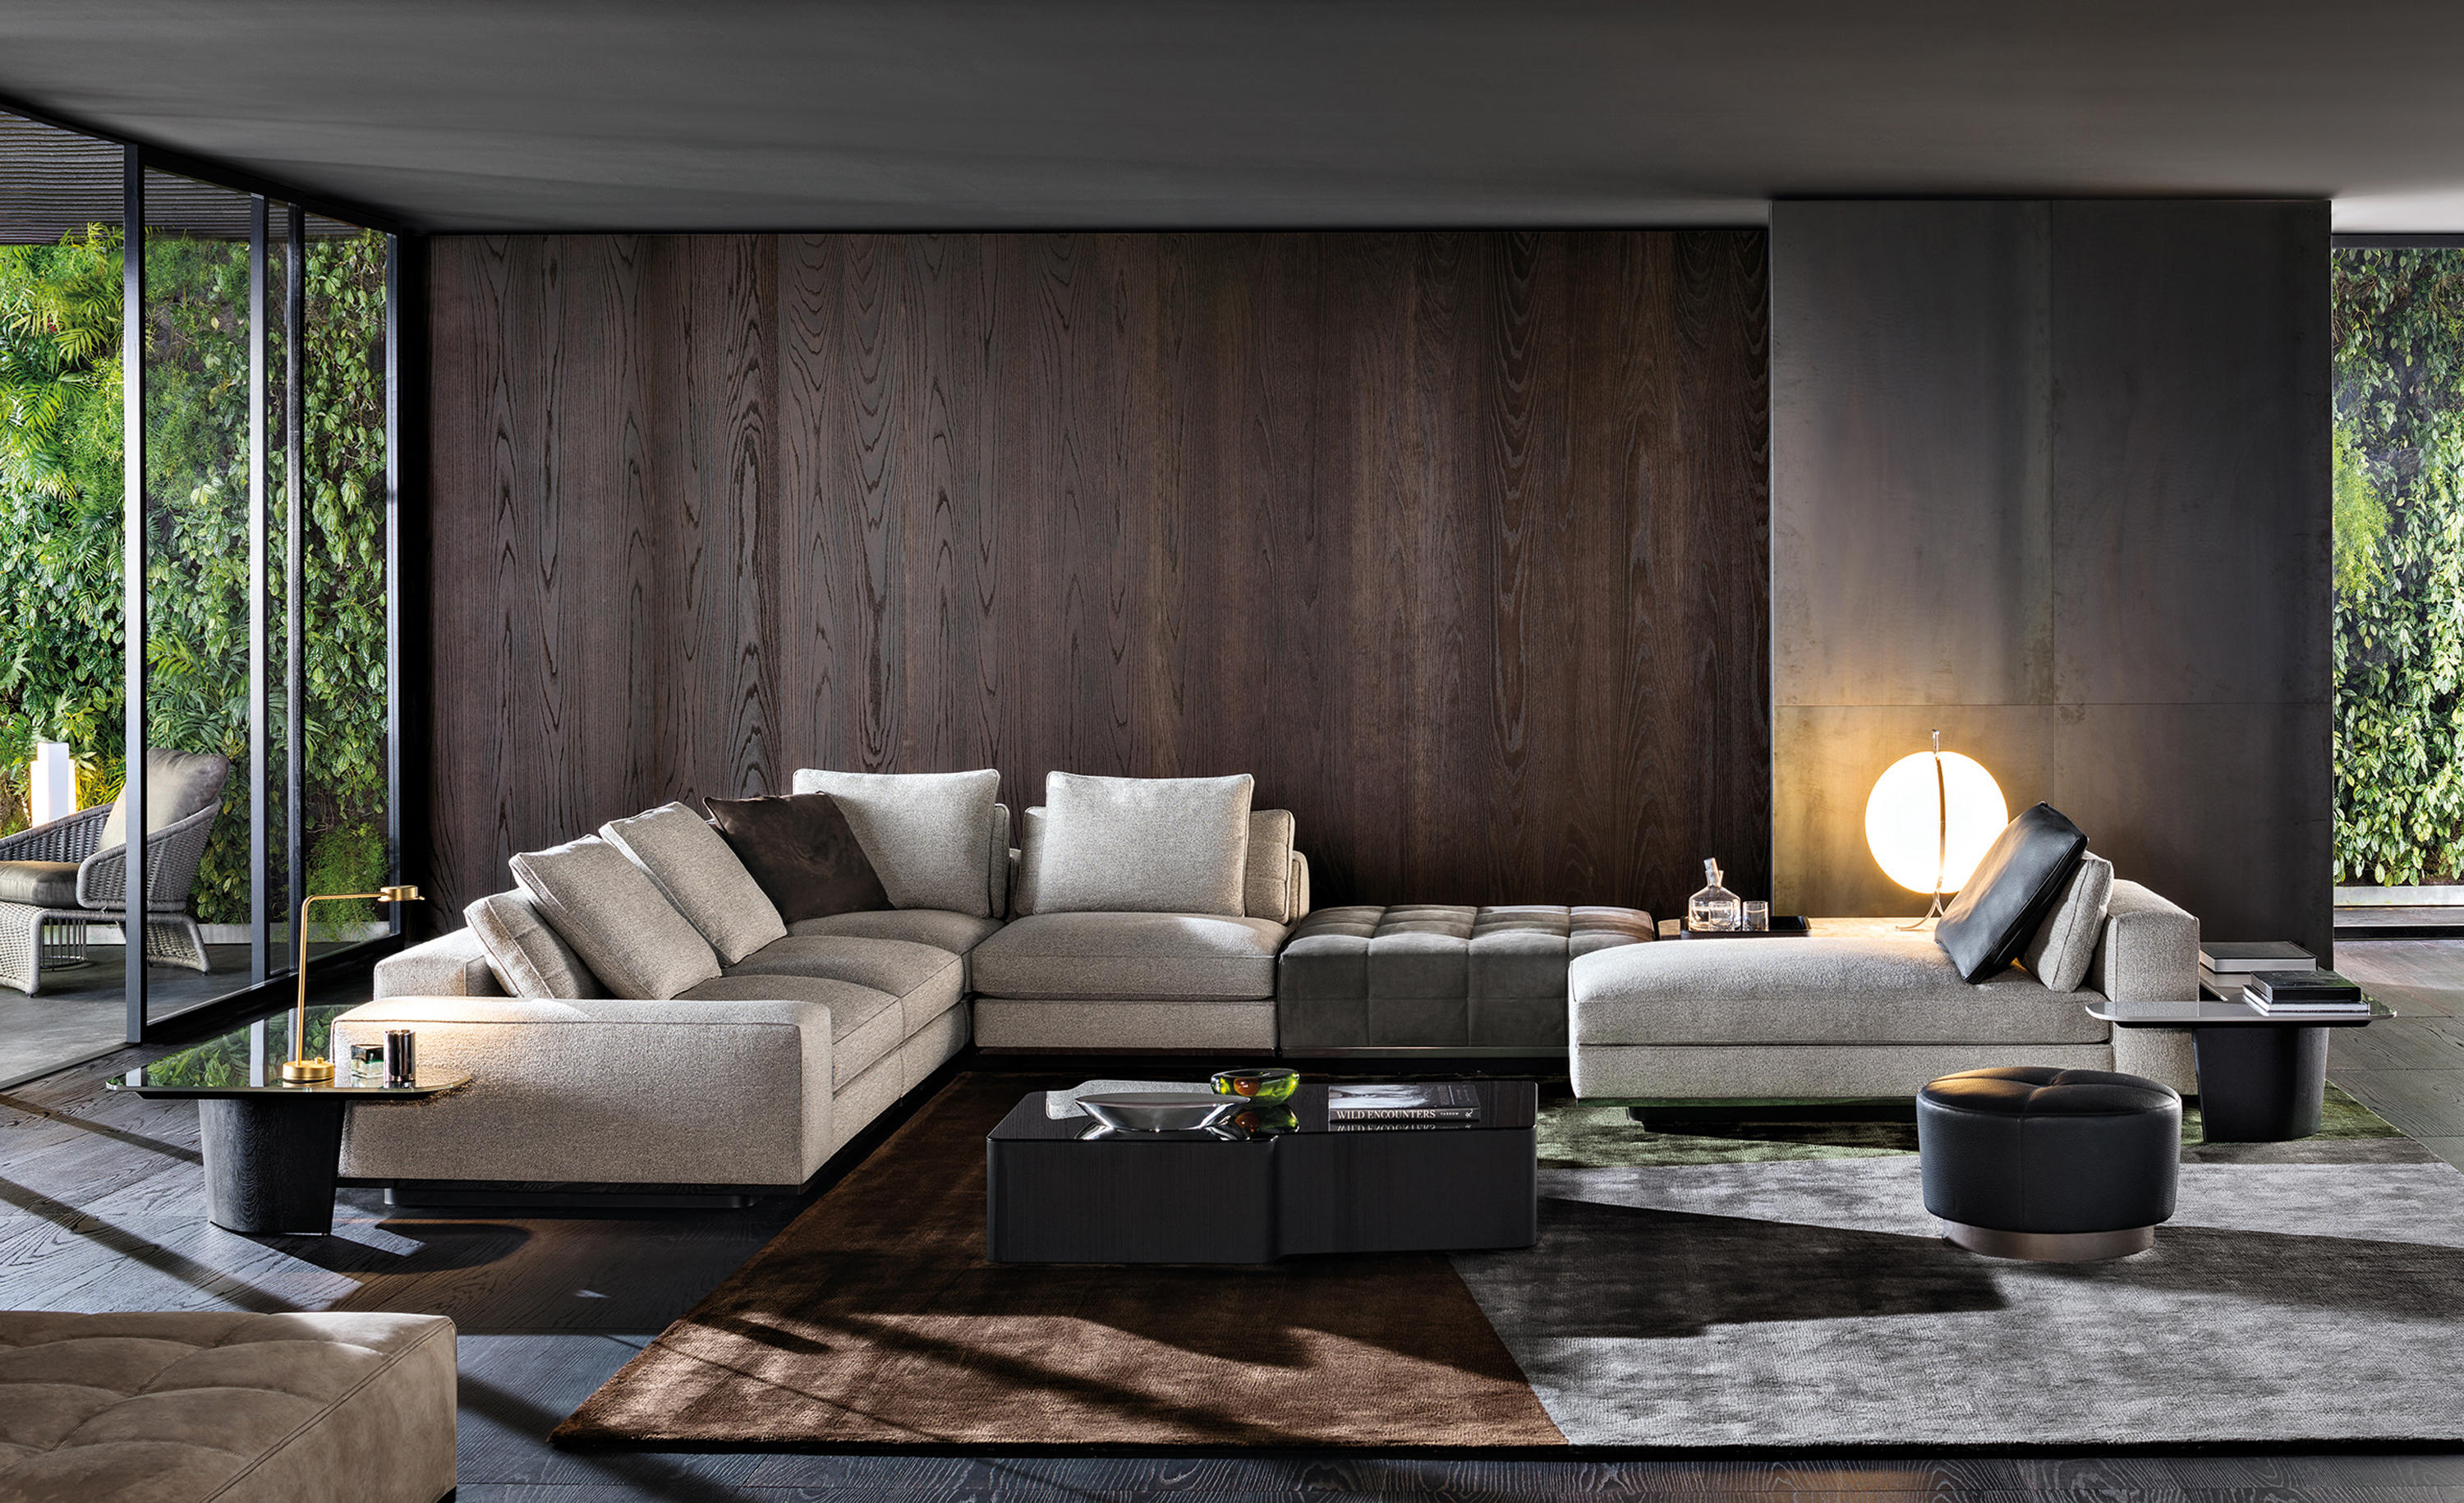 Lawrence Seating System by Minotti  Lawrence Seating System by Minotti ...